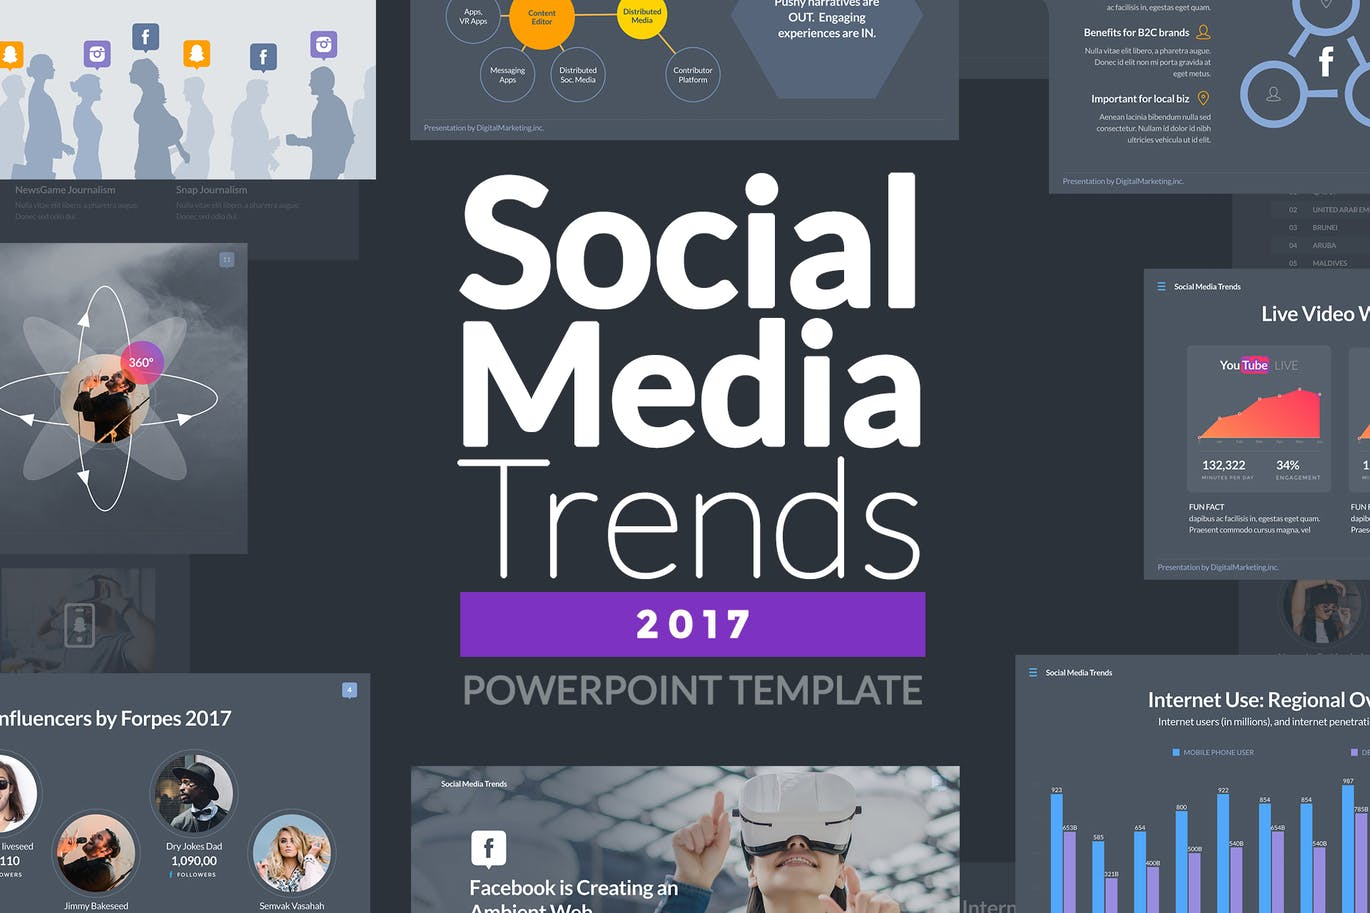 Social media trends 2017 powerpoint template by slidehack on social media trends 2017 powerpoint template by slidehack on envato elements alramifo Choice Image